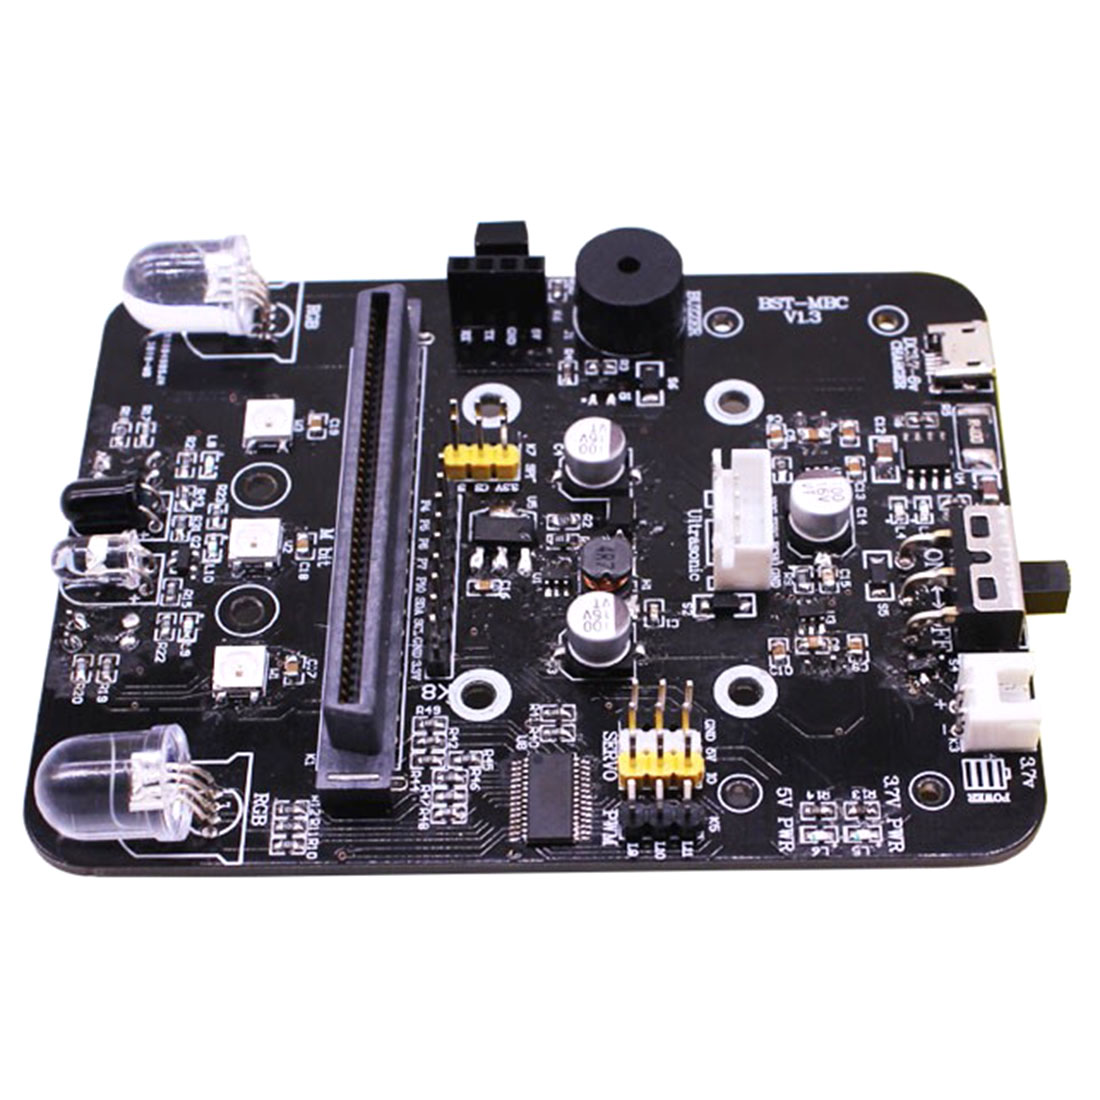 Multifunction Expansion Board Learning Kit For Stem Maker Education Brain-Training Toy For Kids Educational Toys Birthday Gift